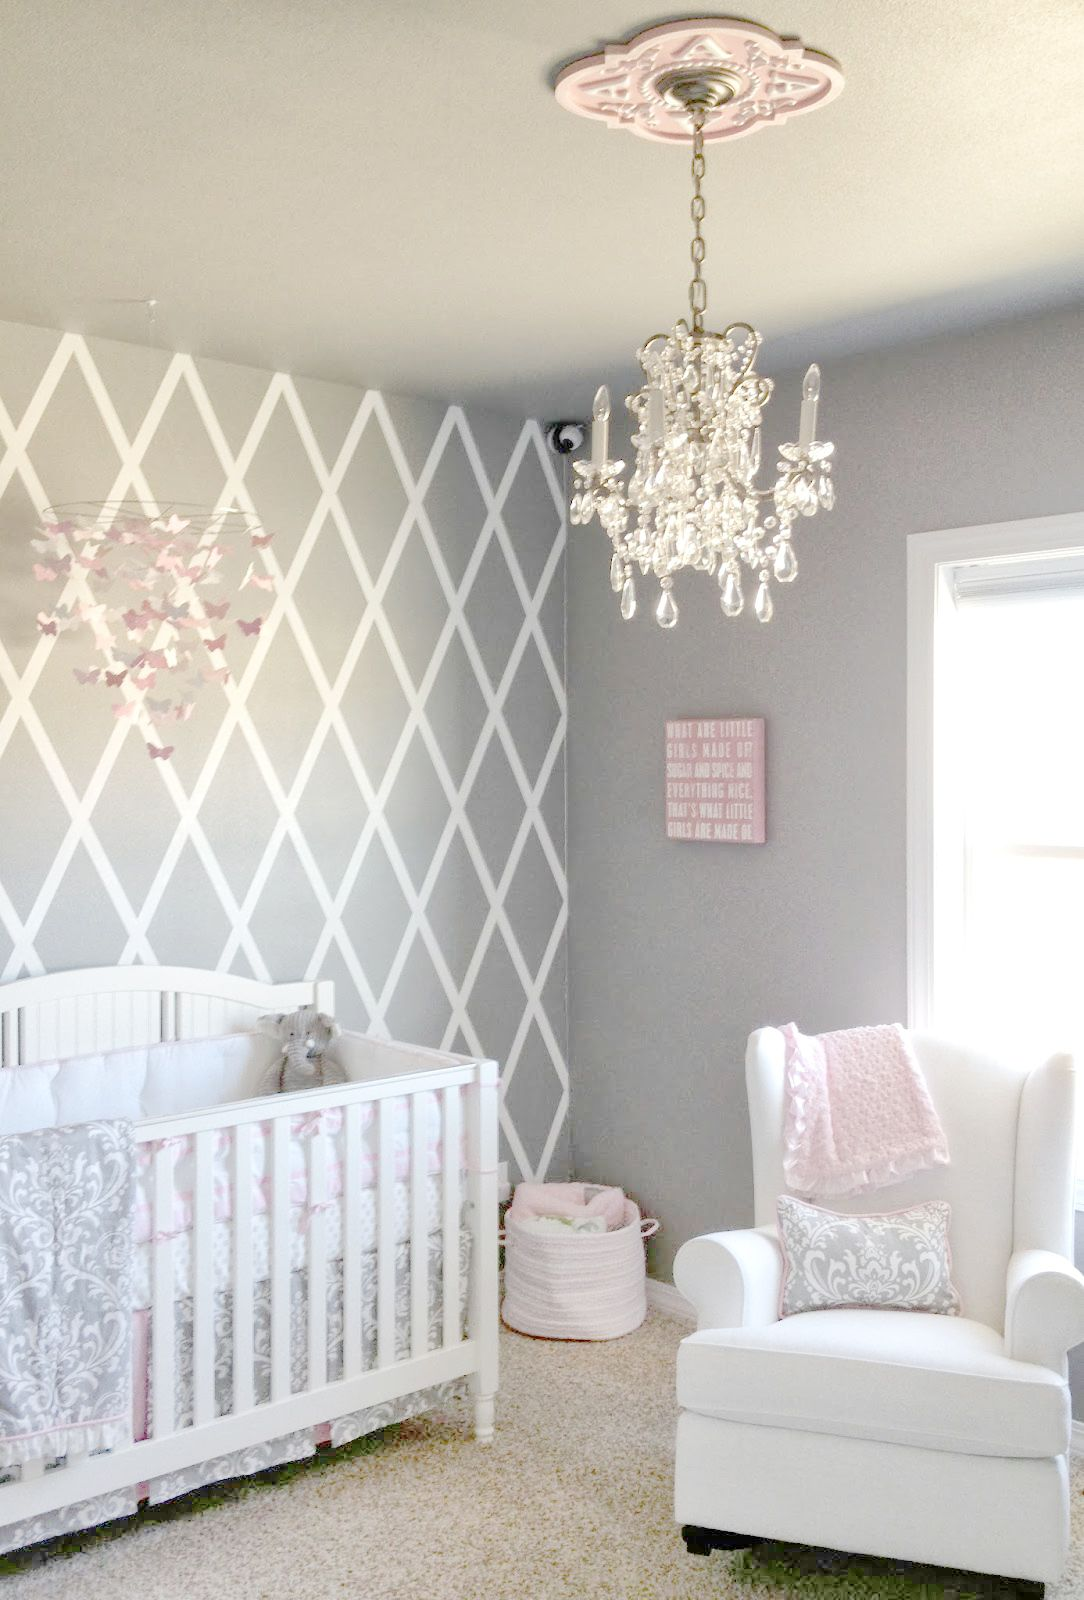 Merveilleux Beautiful Gray And Pink Nursery Features Our Stella Gray Baby Bedding  Collection! So Pretty For A Baby Girlu0027s Nursery!